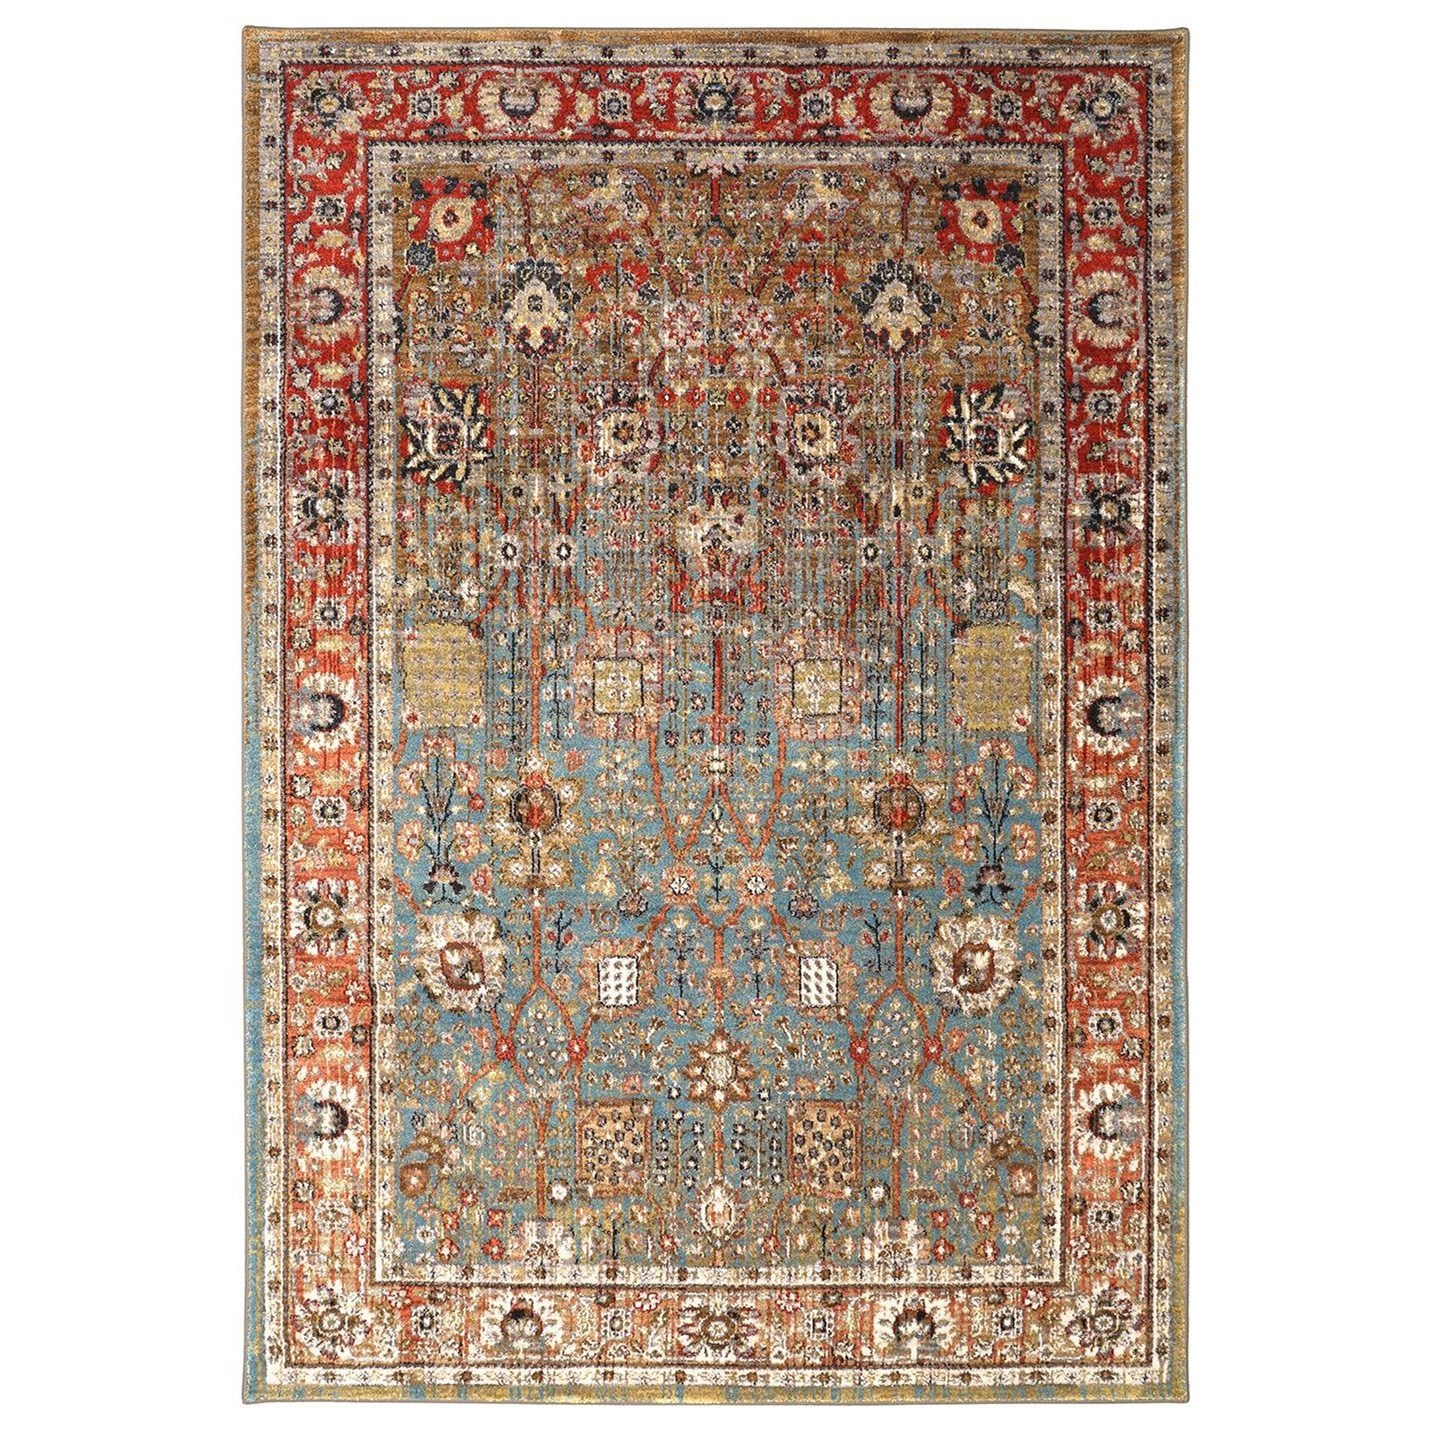 Spice Market 8'x11' Myanmar Aquamarine Rug by Karastan Rugs at Darvin Furniture